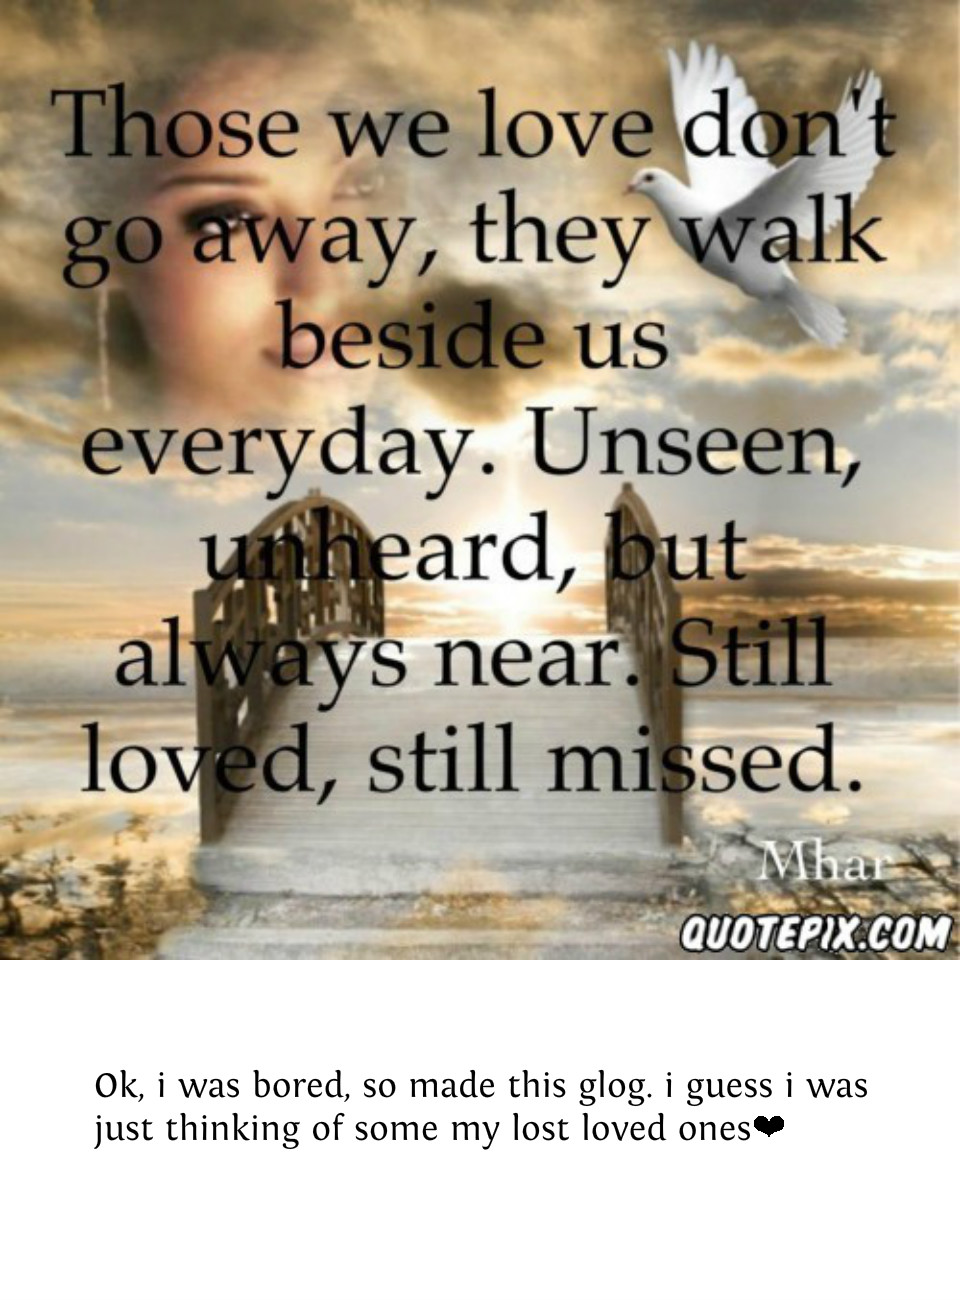 Missing Lost Loved Ones Quotes : Christmas Missing Loved Ones Quotes. QuotesGram